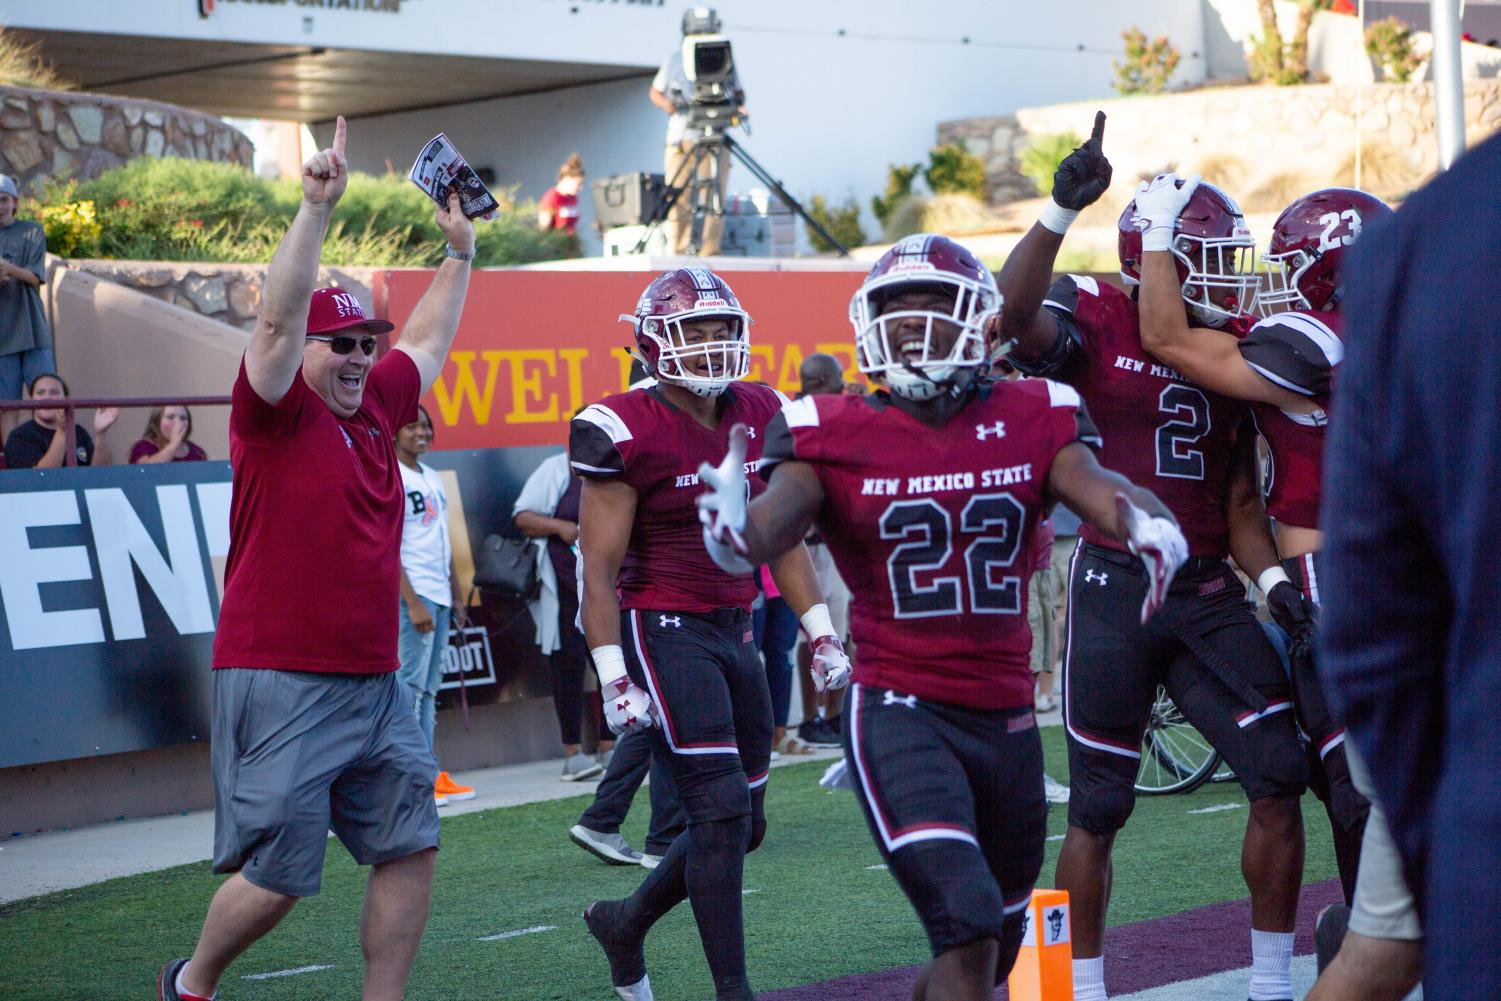 The Aggies go on the road against the nation's leading passing offense from 2018 to kickoff Doug Martin's seventh season at the helm.